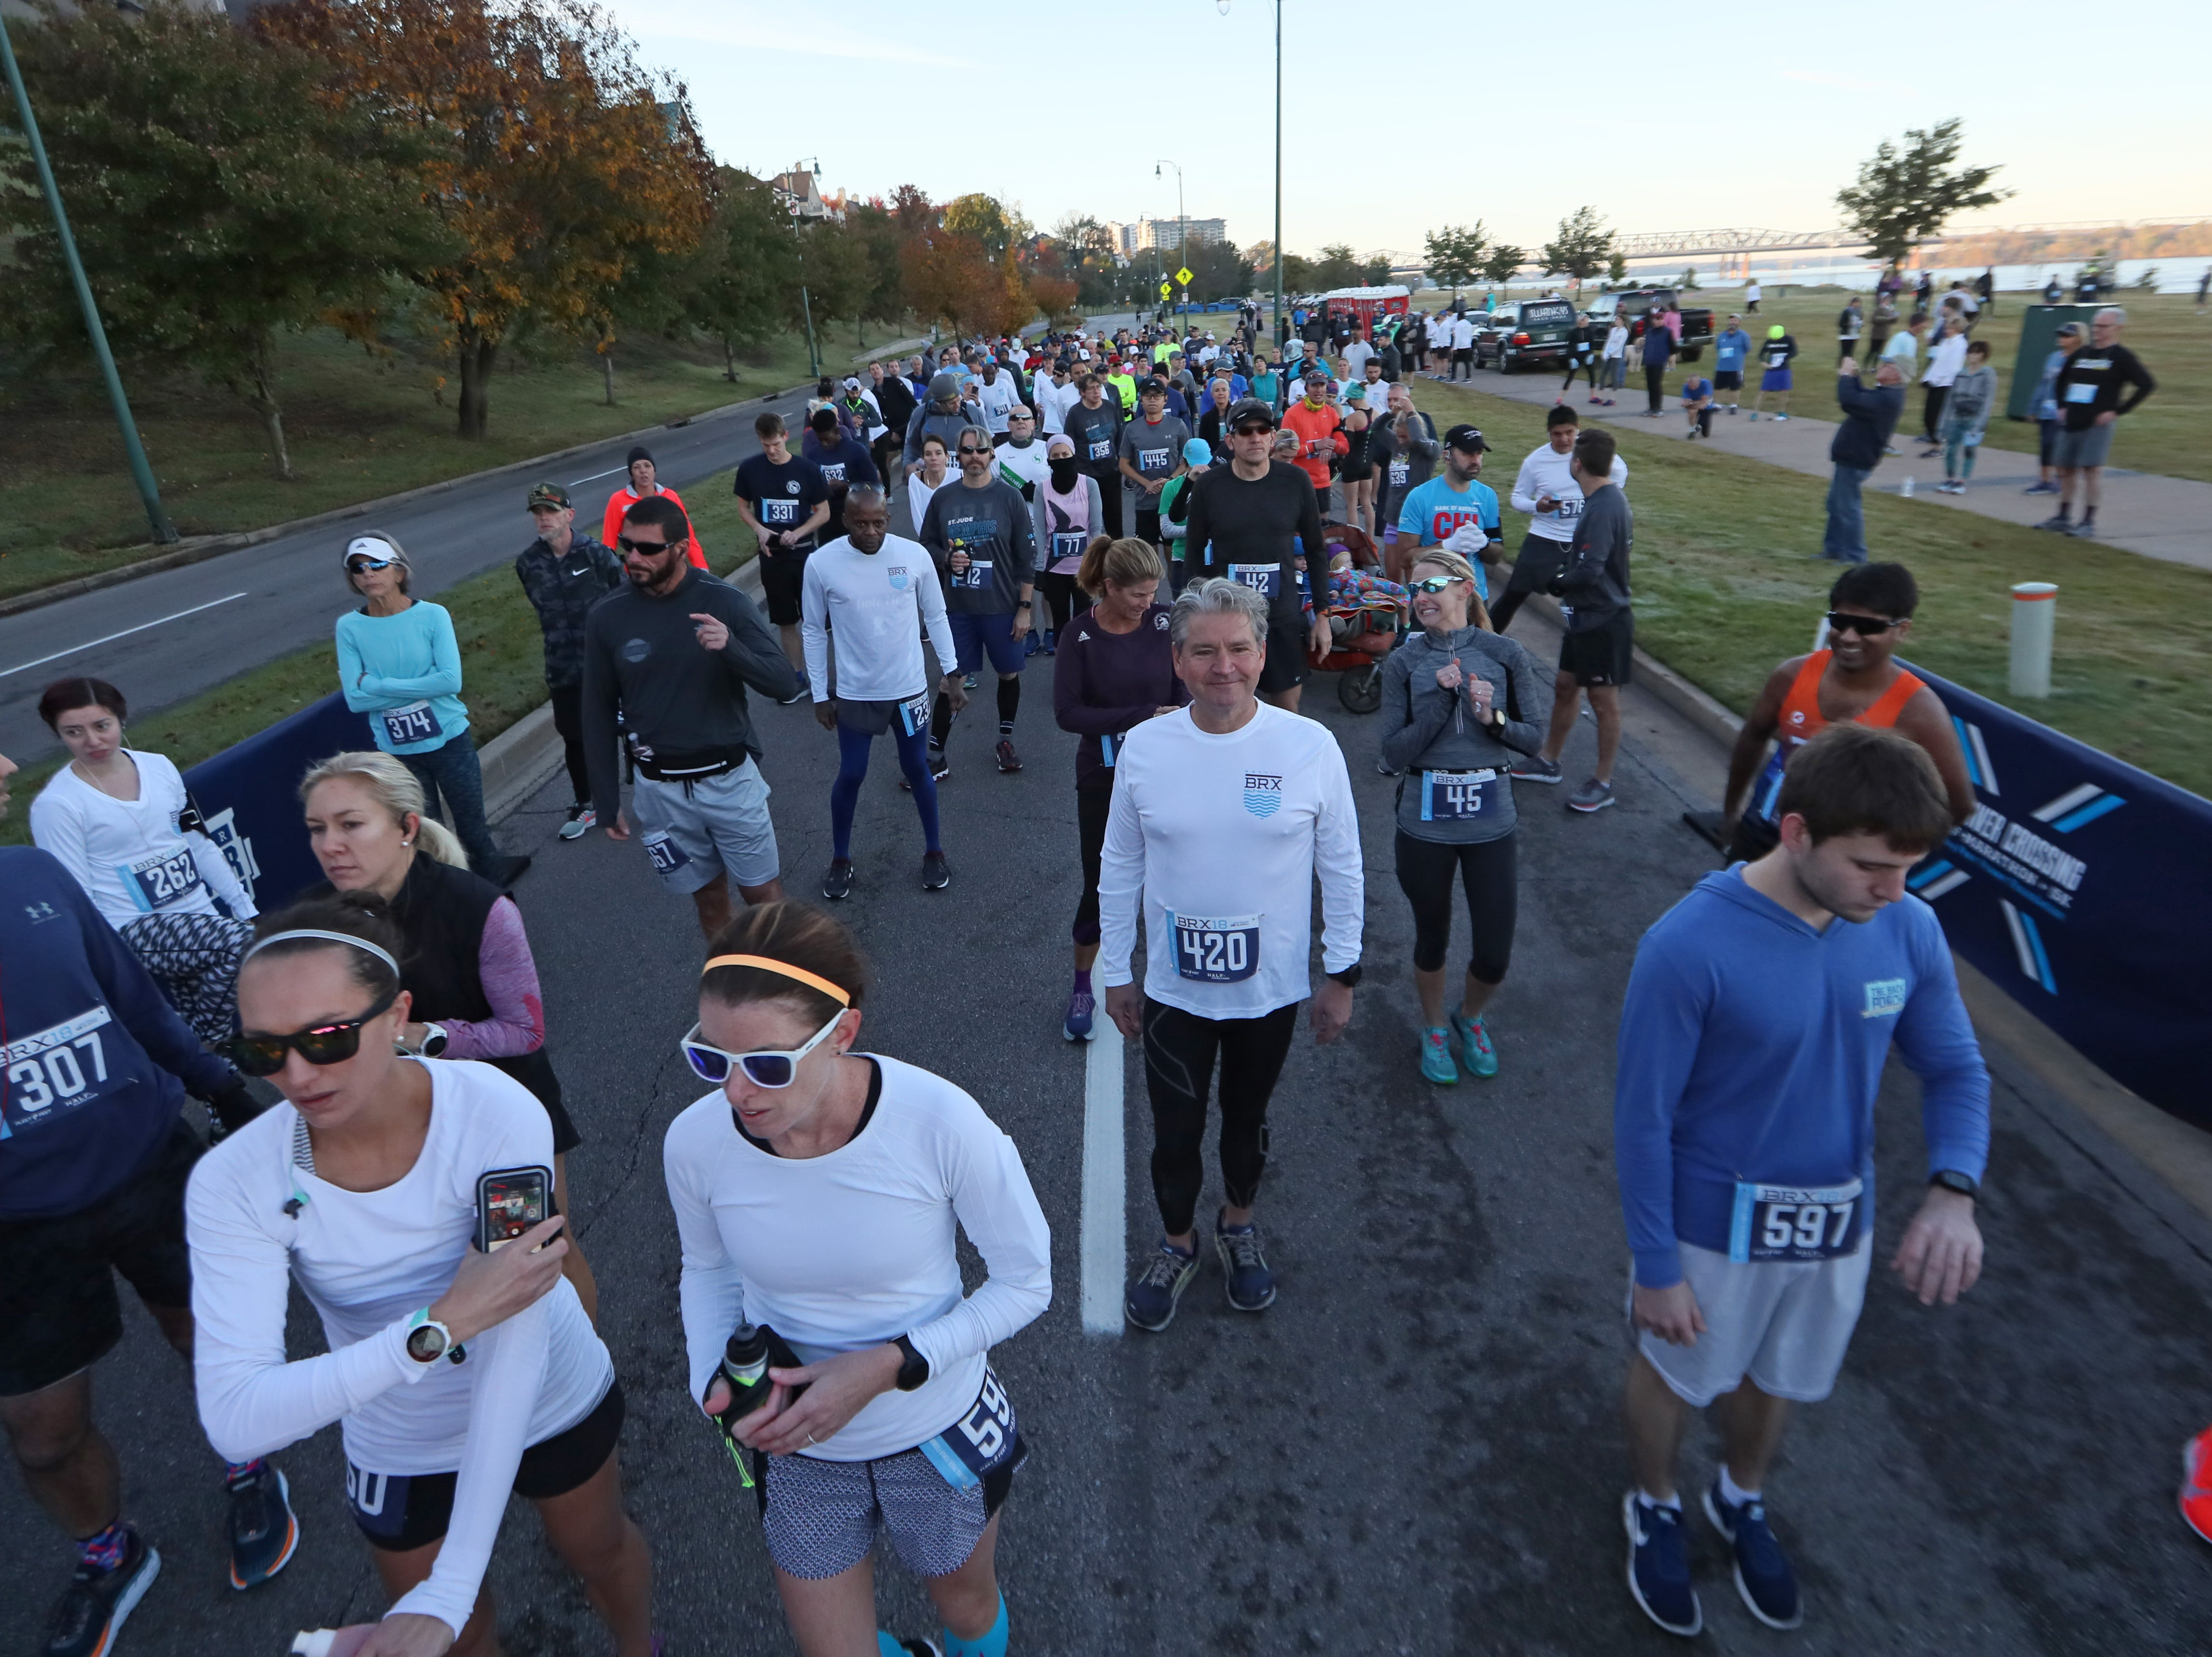 Runners await the start of the Big River Crossing Half-Marathon and 5K downtown Memphis Saturday, November 3, 2018.